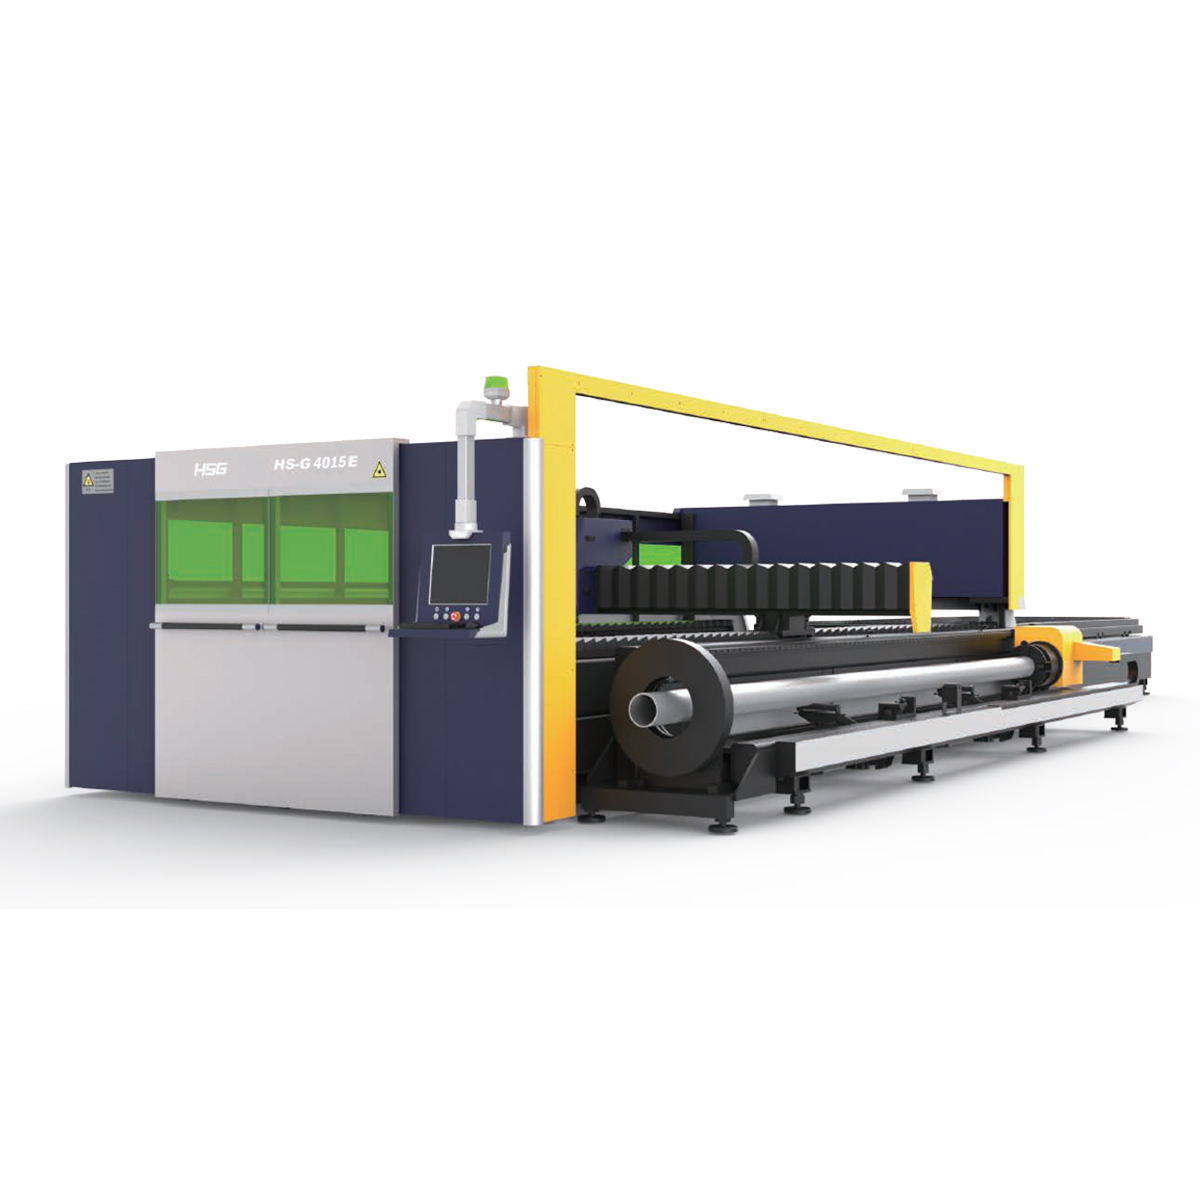 HSG: G4015E Cutting Metal Sheet and Tube